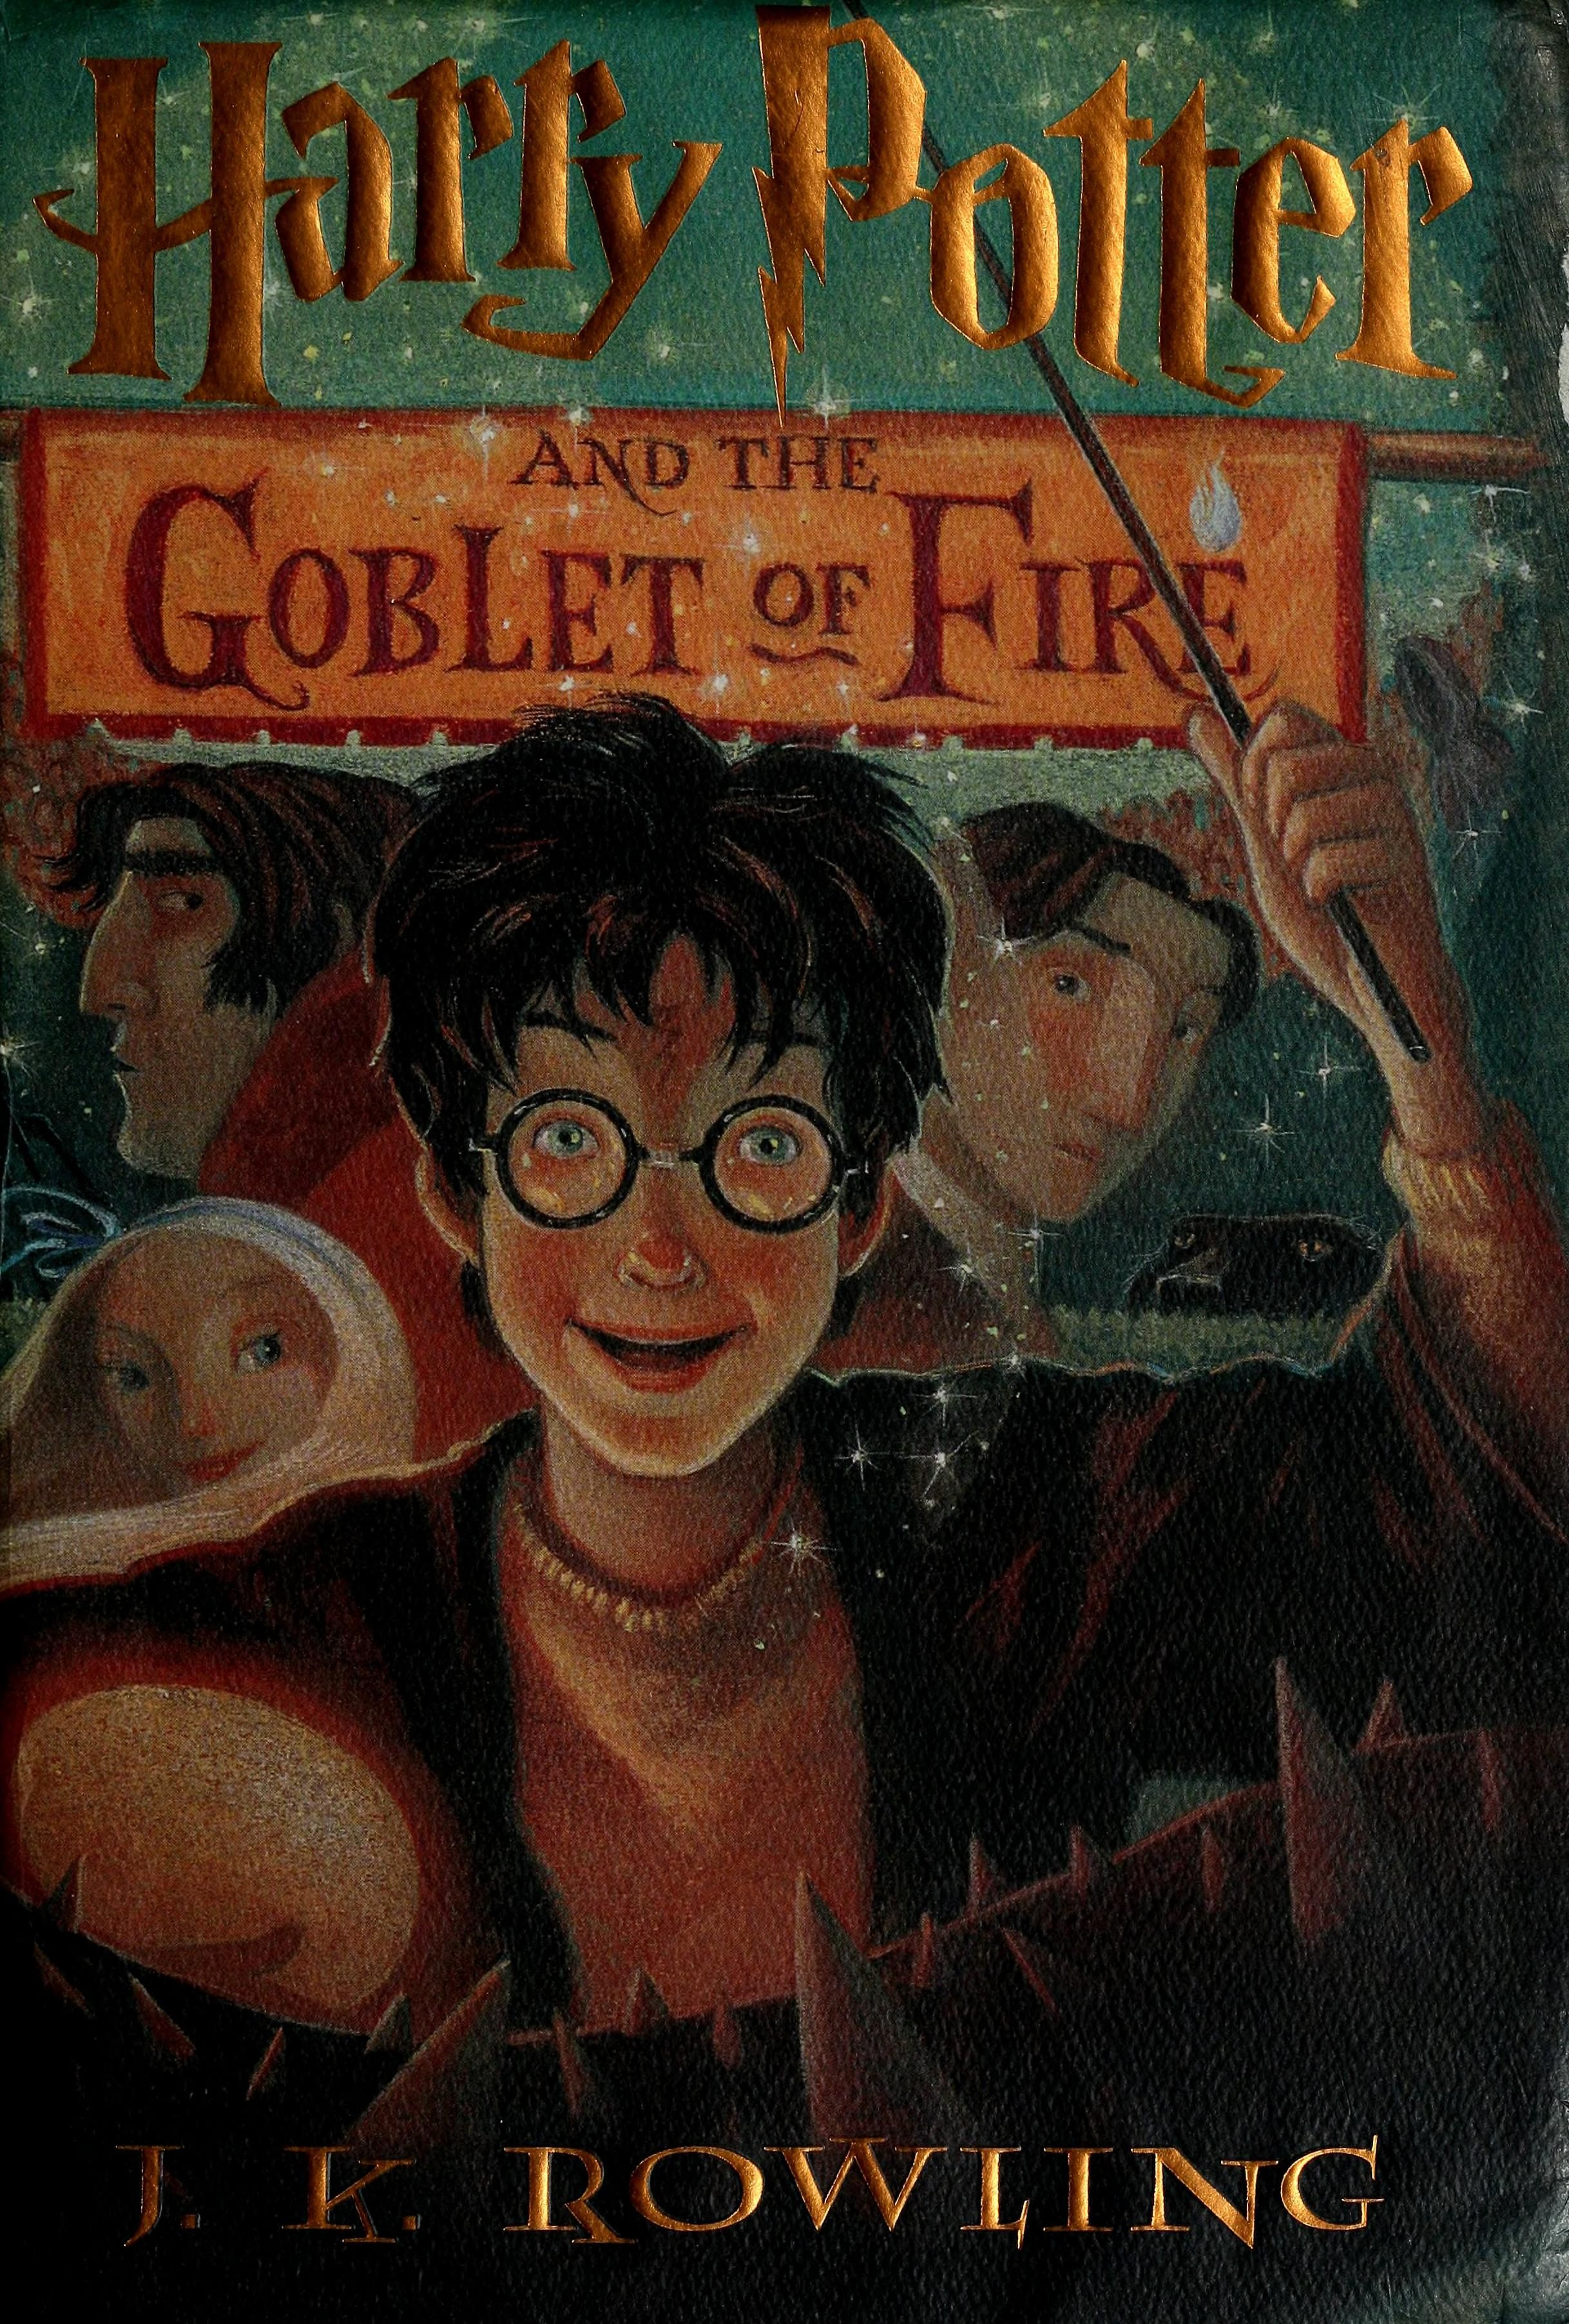 Harry Potter And The Goblet Of Fire Rowling J K Free Download Borrow And Streaming Internet Archive Harry Potter Goblet Harry Potter Illustrations Goblet Of Fire